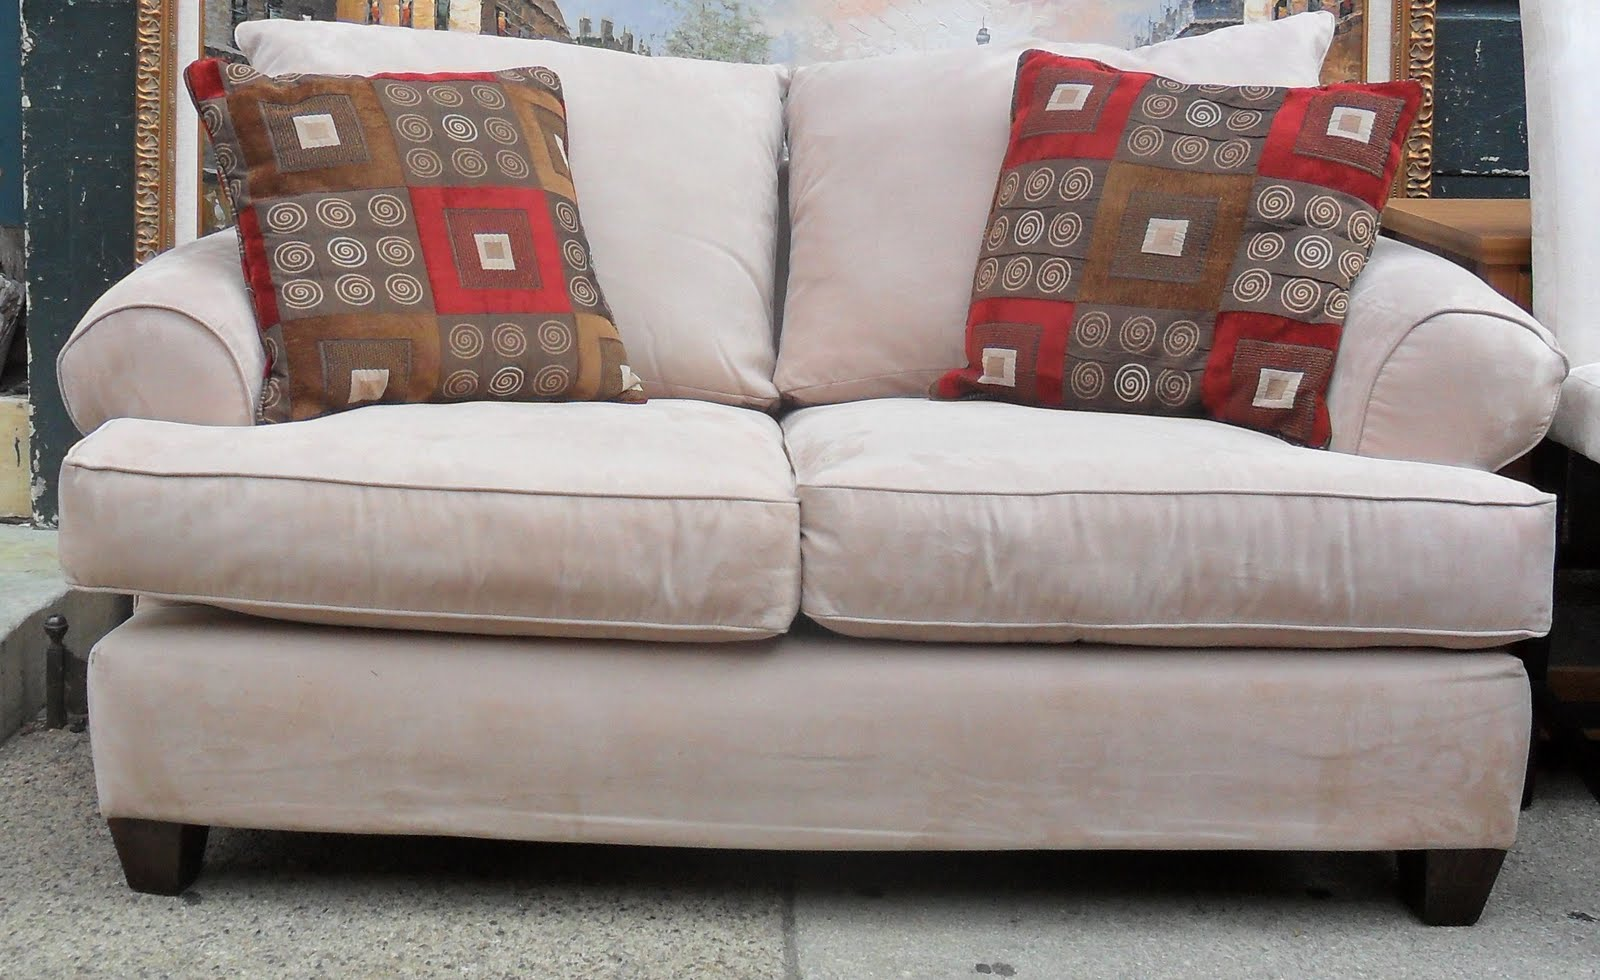 OC Recycled Furniture Home Used Couch Modern L Shaped